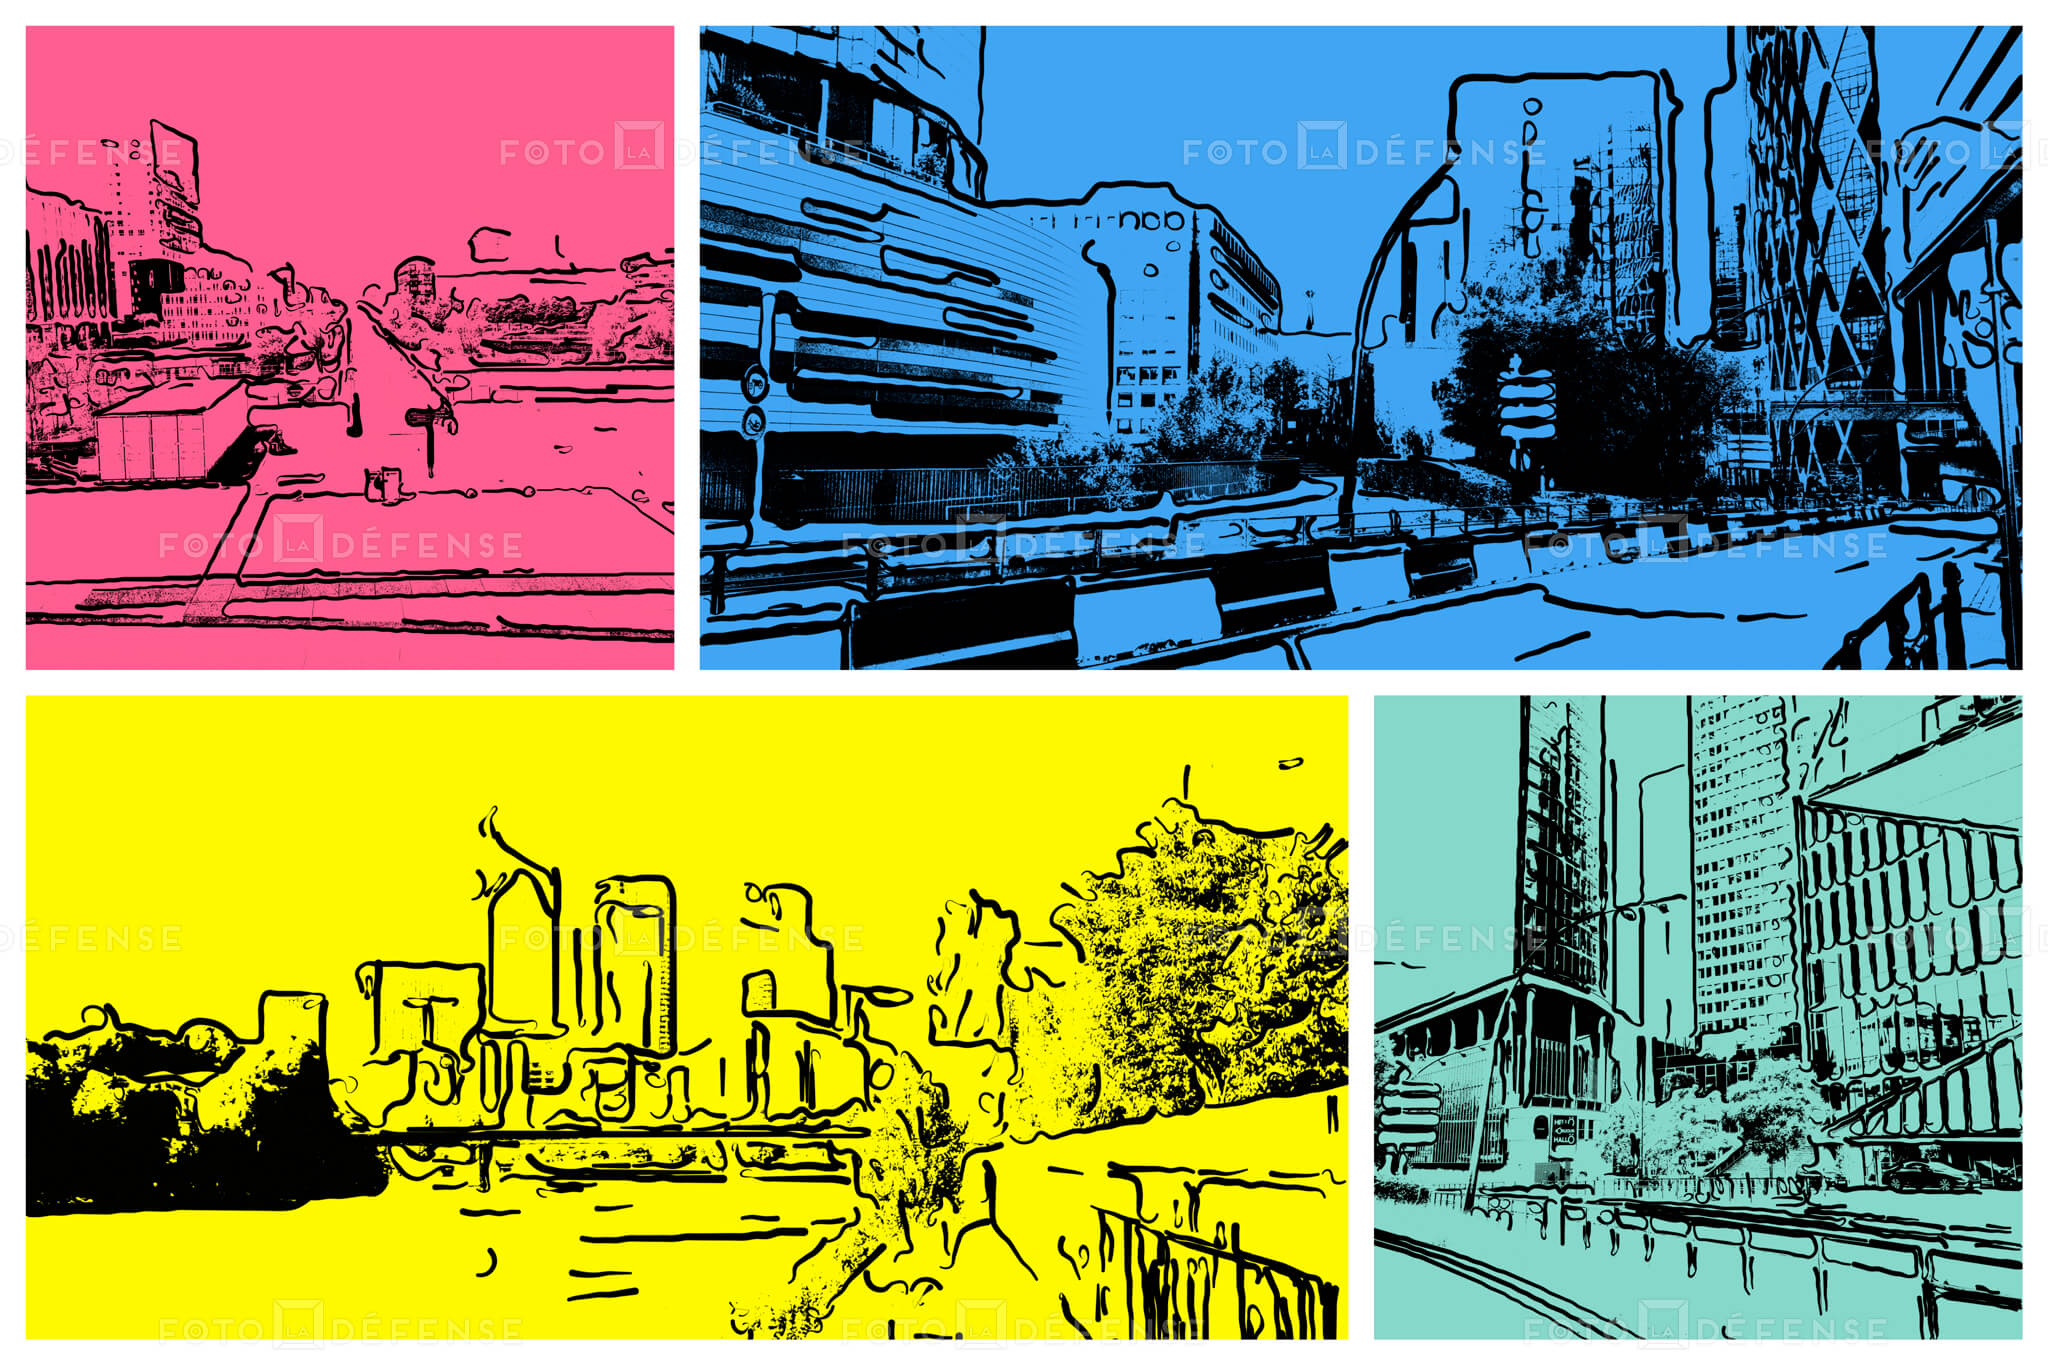 Photo pop art Paris la Defense